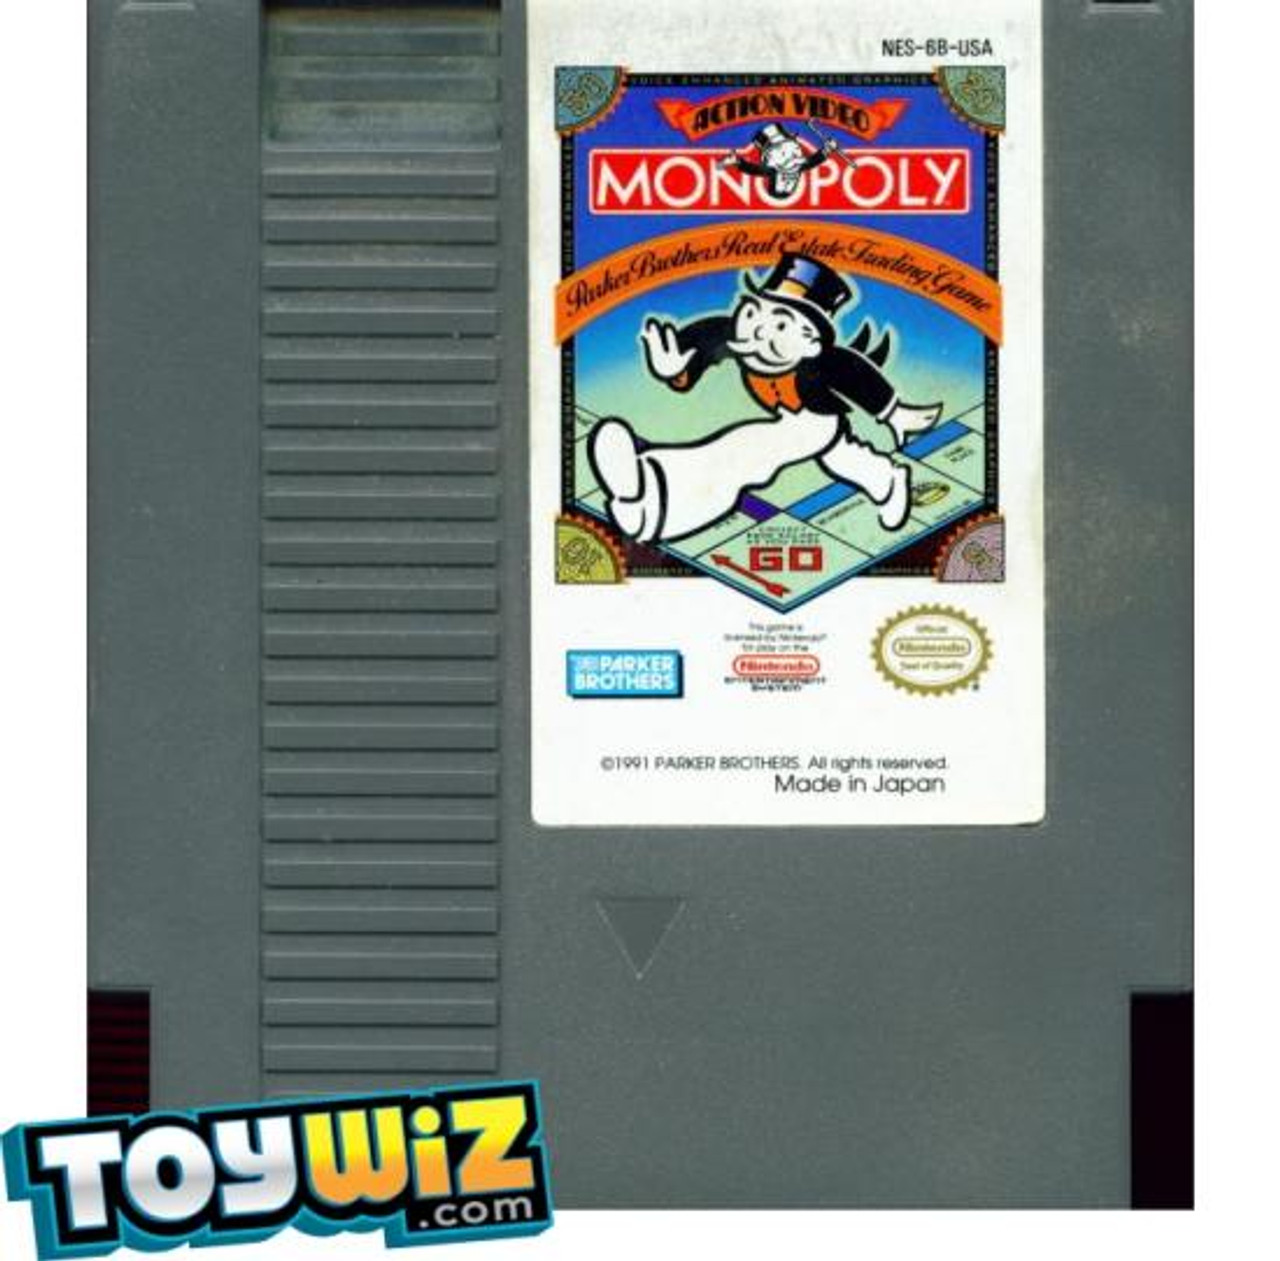 Nintendo NES Monopoly Video Game Cartridge [Played Condition]